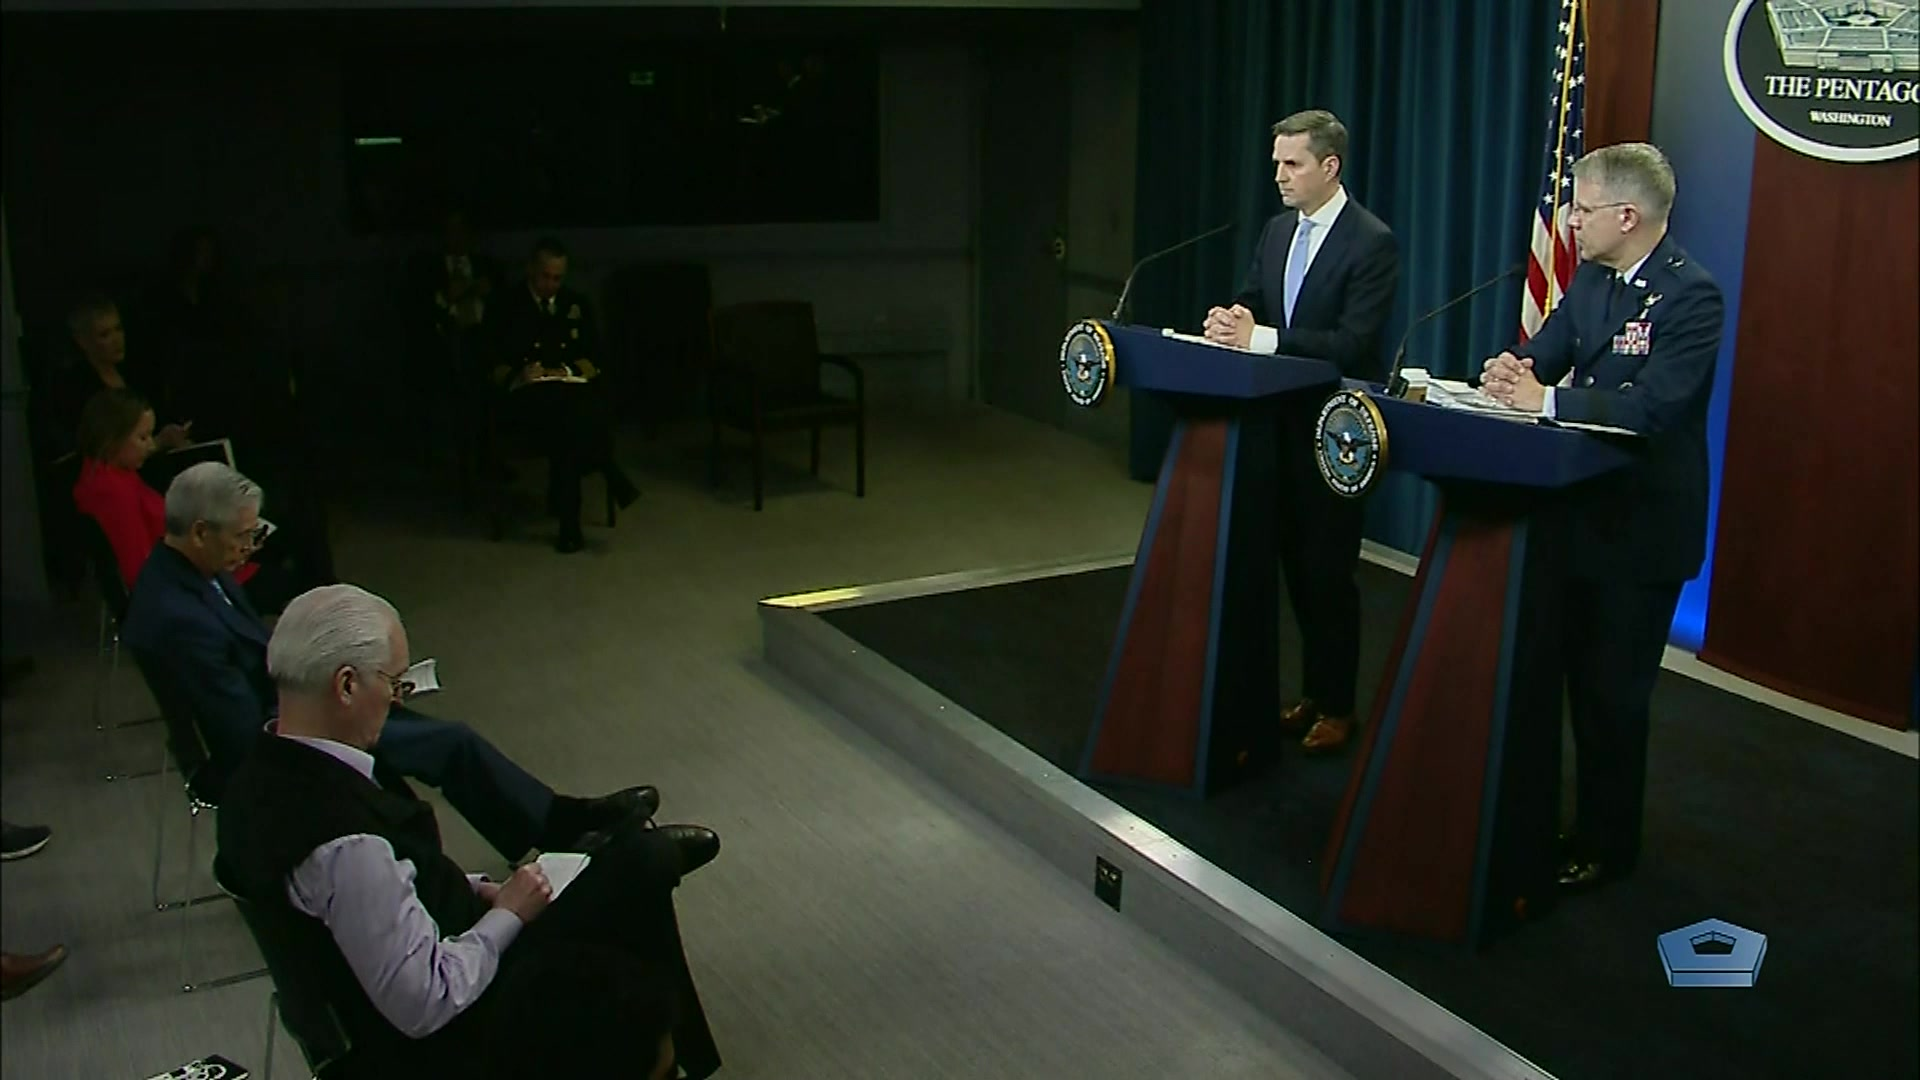 A civilian and an airman stand at lecterns in front of seated reporters.